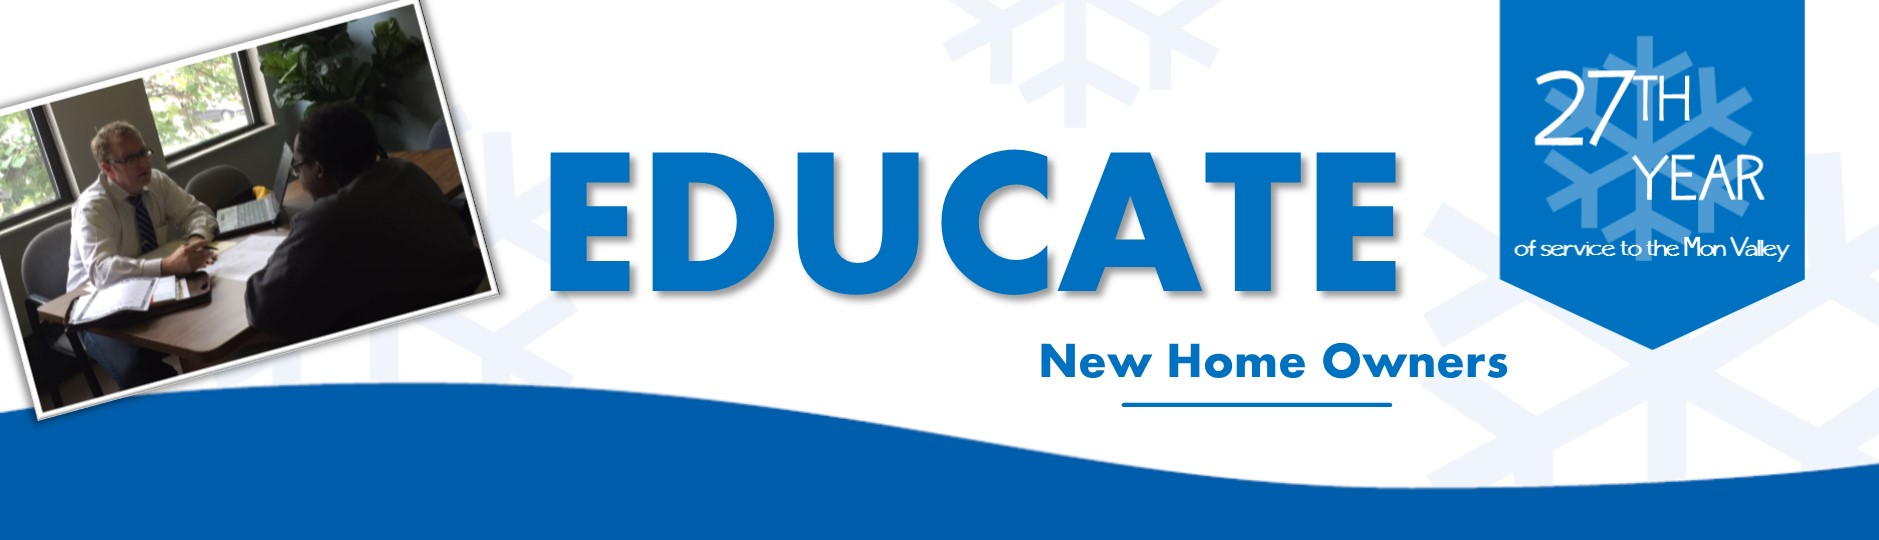 Educating New Homeowners 2015: A Review